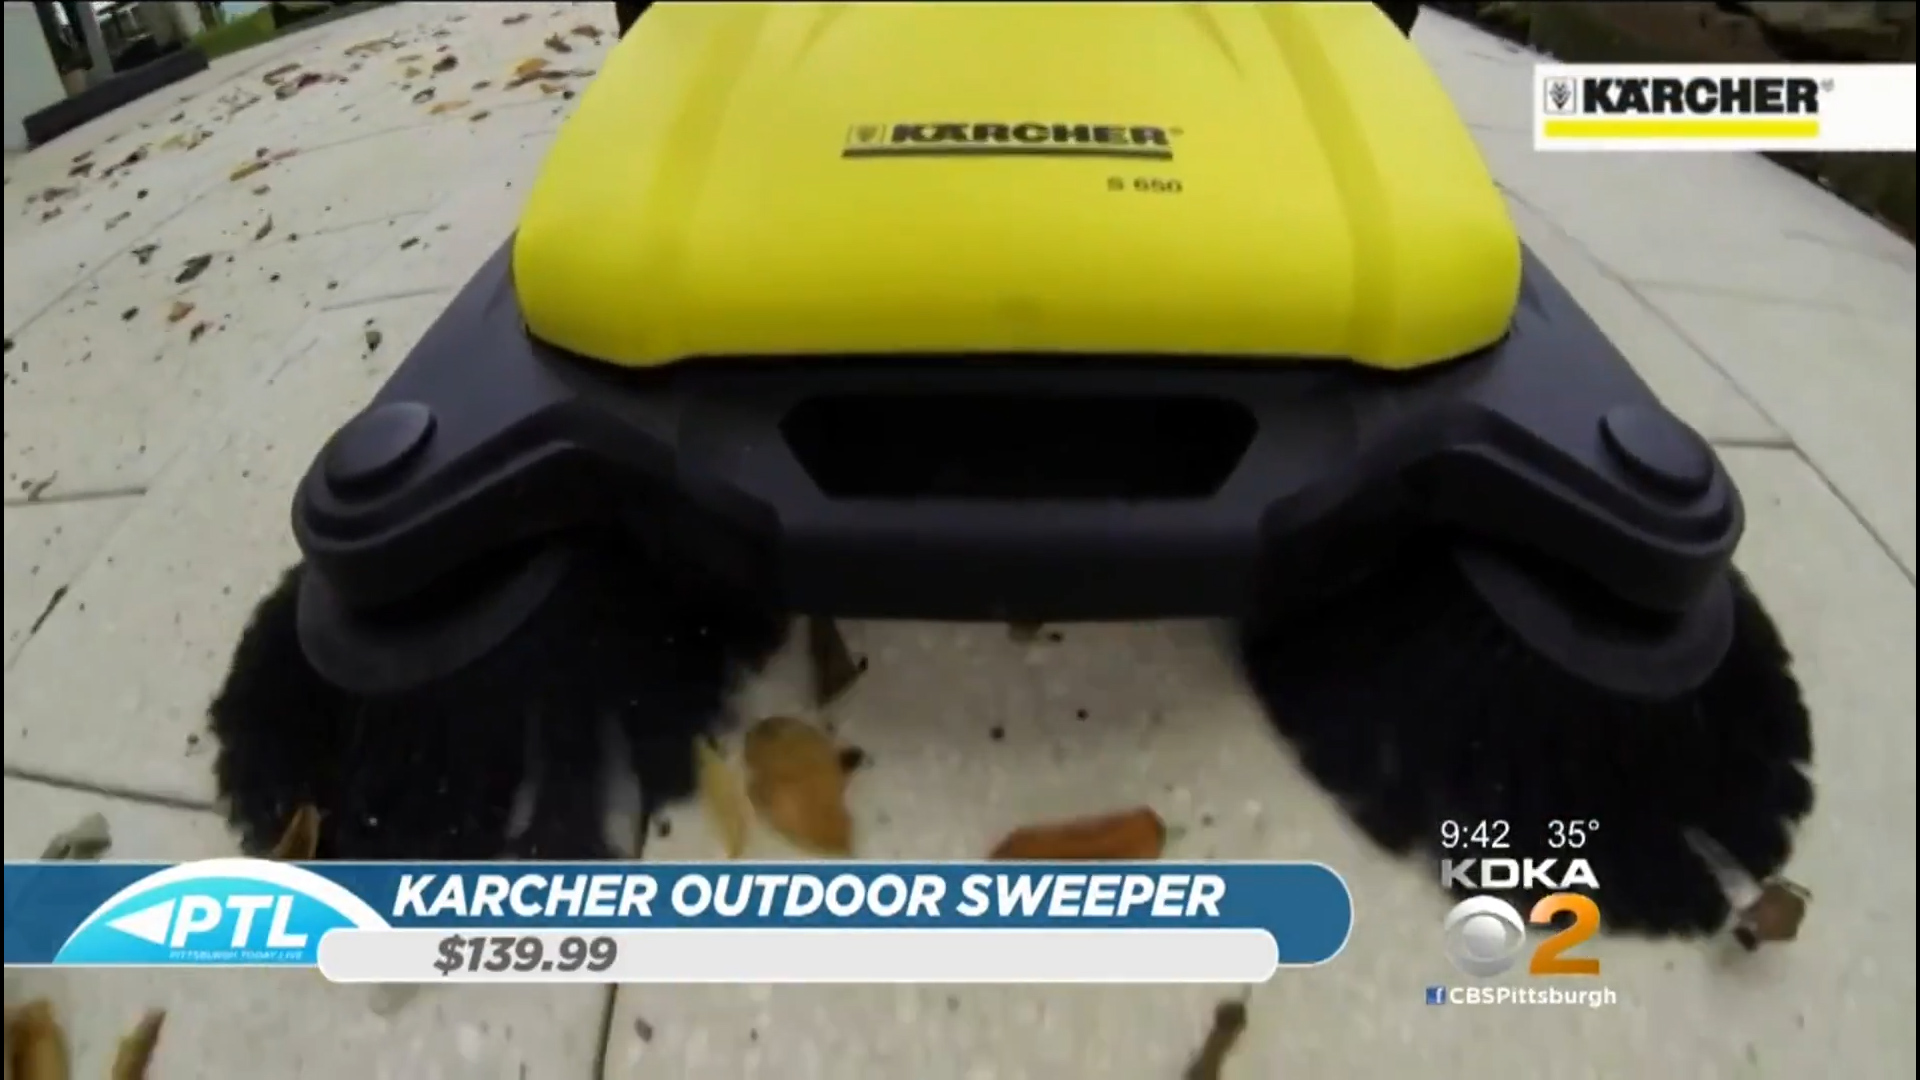 KARCHER S-650 OUTDOOR SWEEPER - $139.99Shop Now